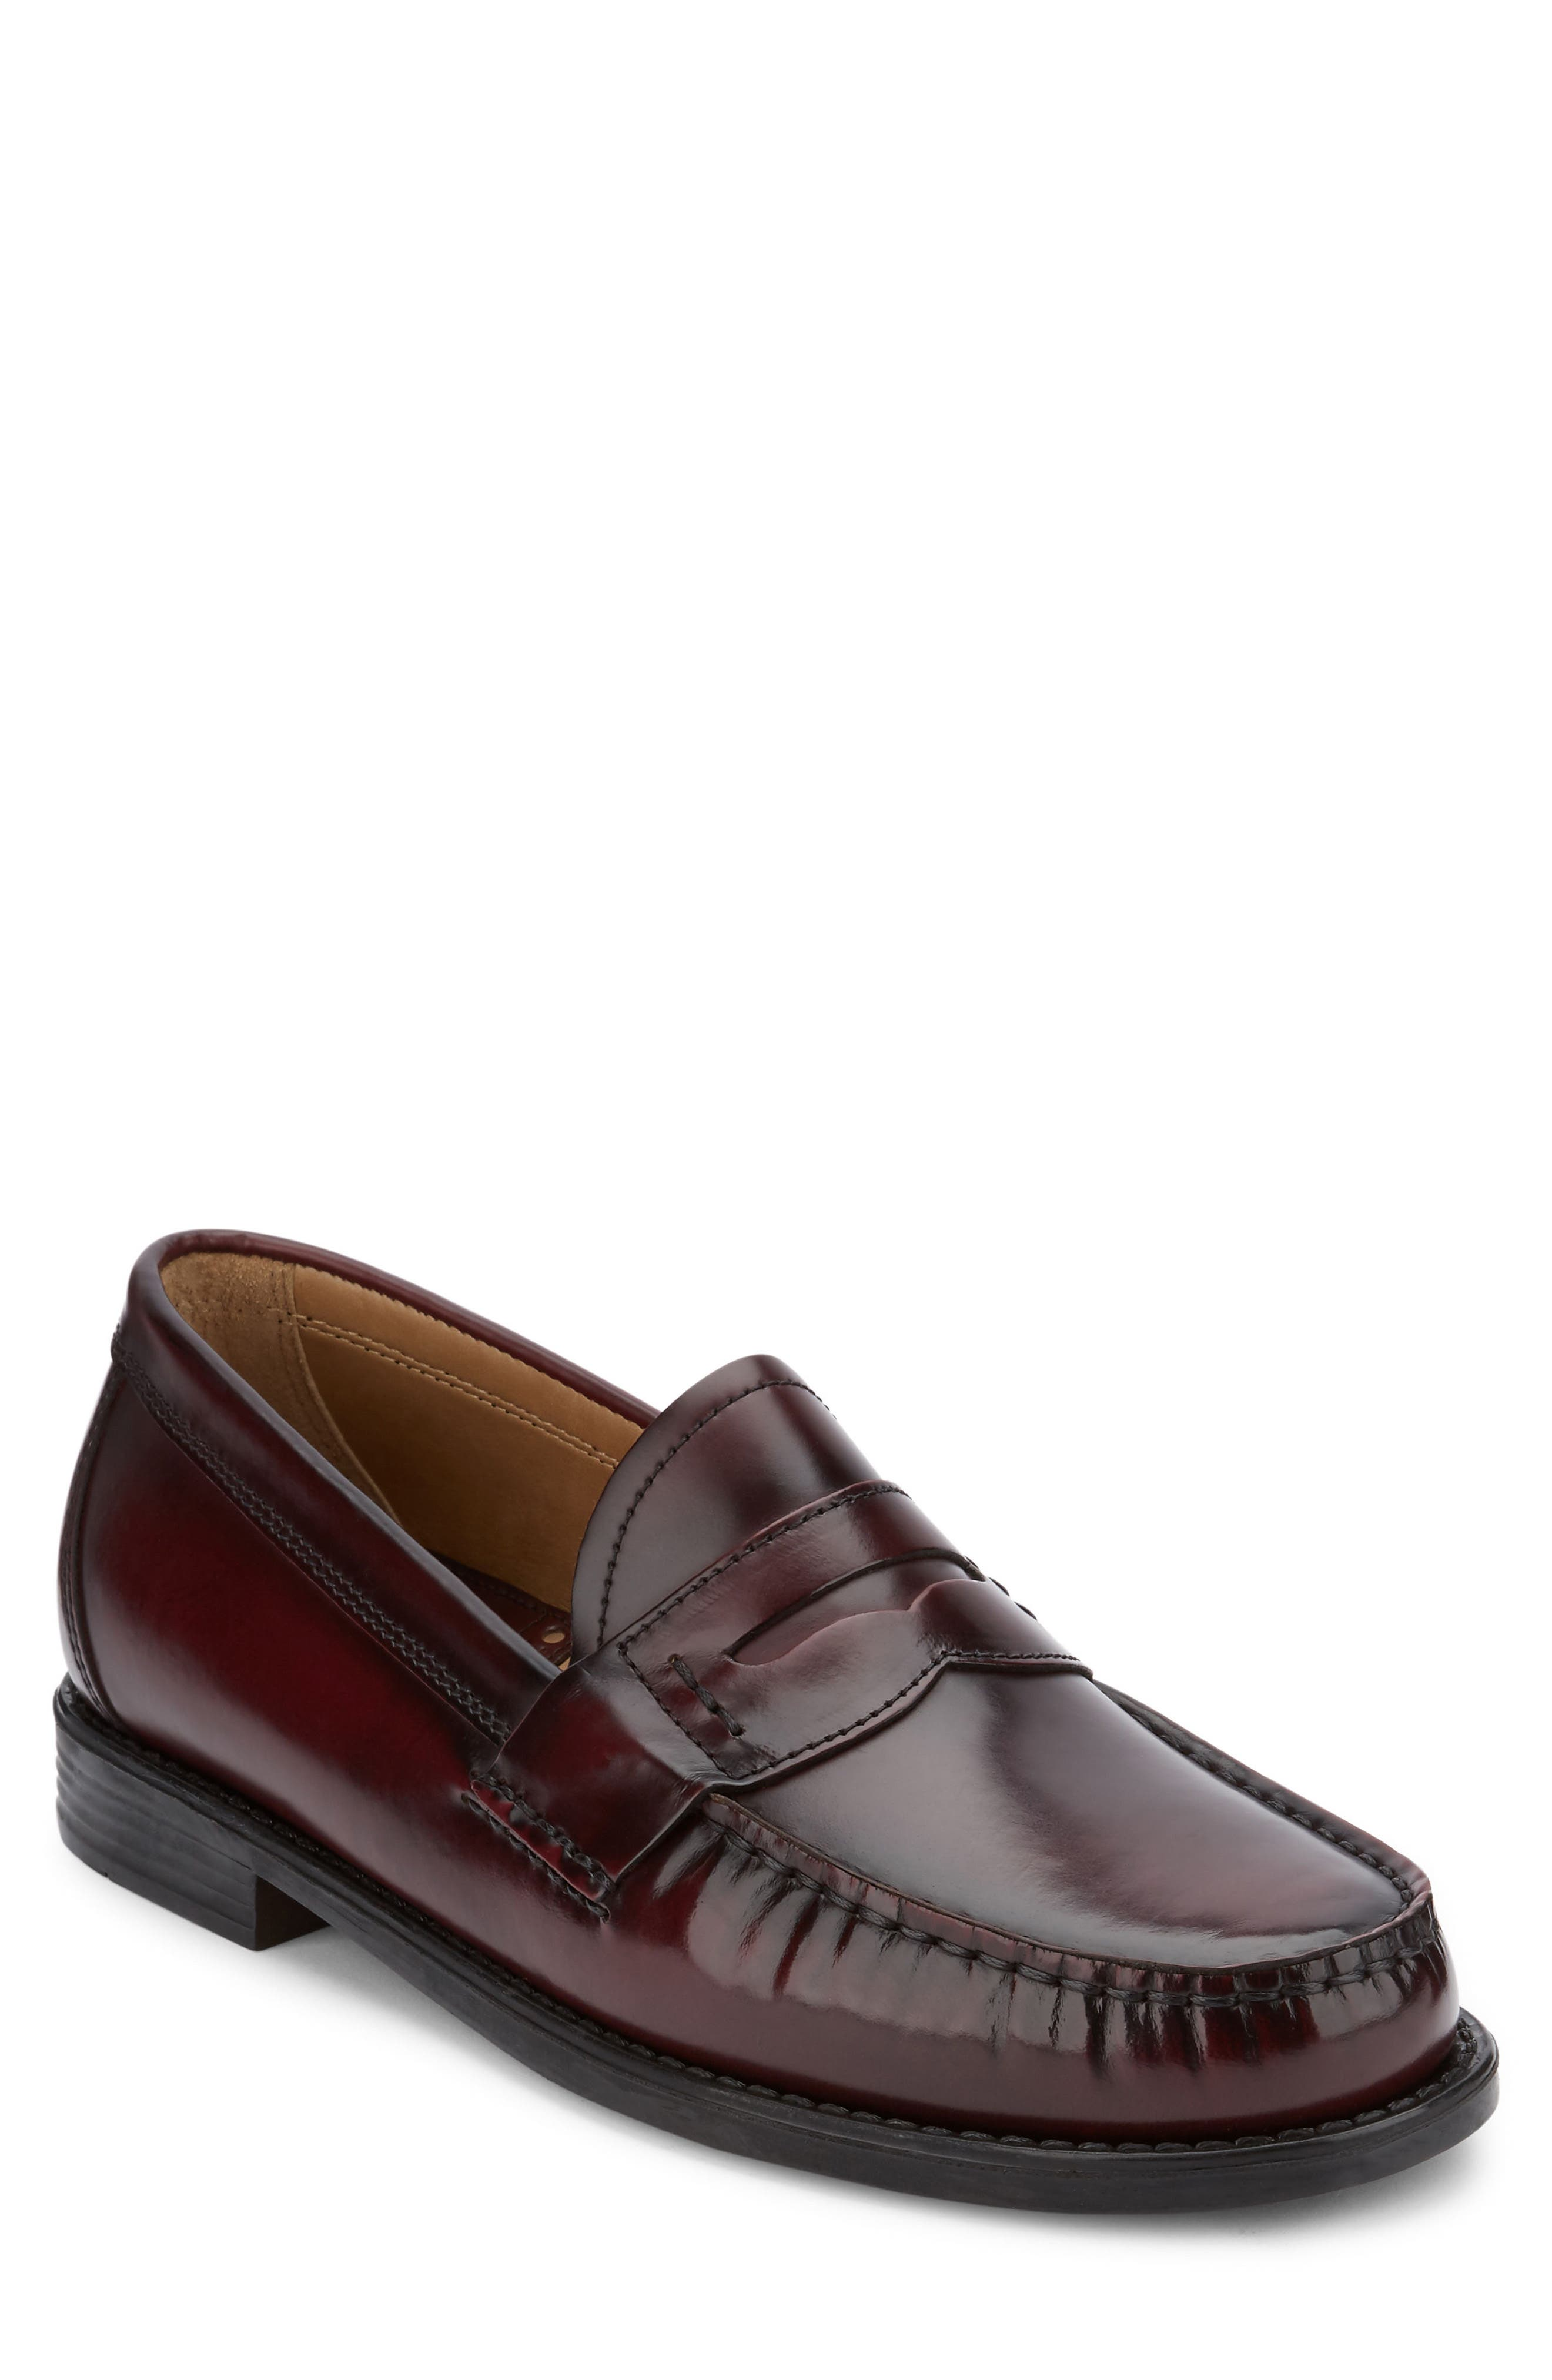 Wagner Penny Loafer,                             Main thumbnail 1, color,                             933